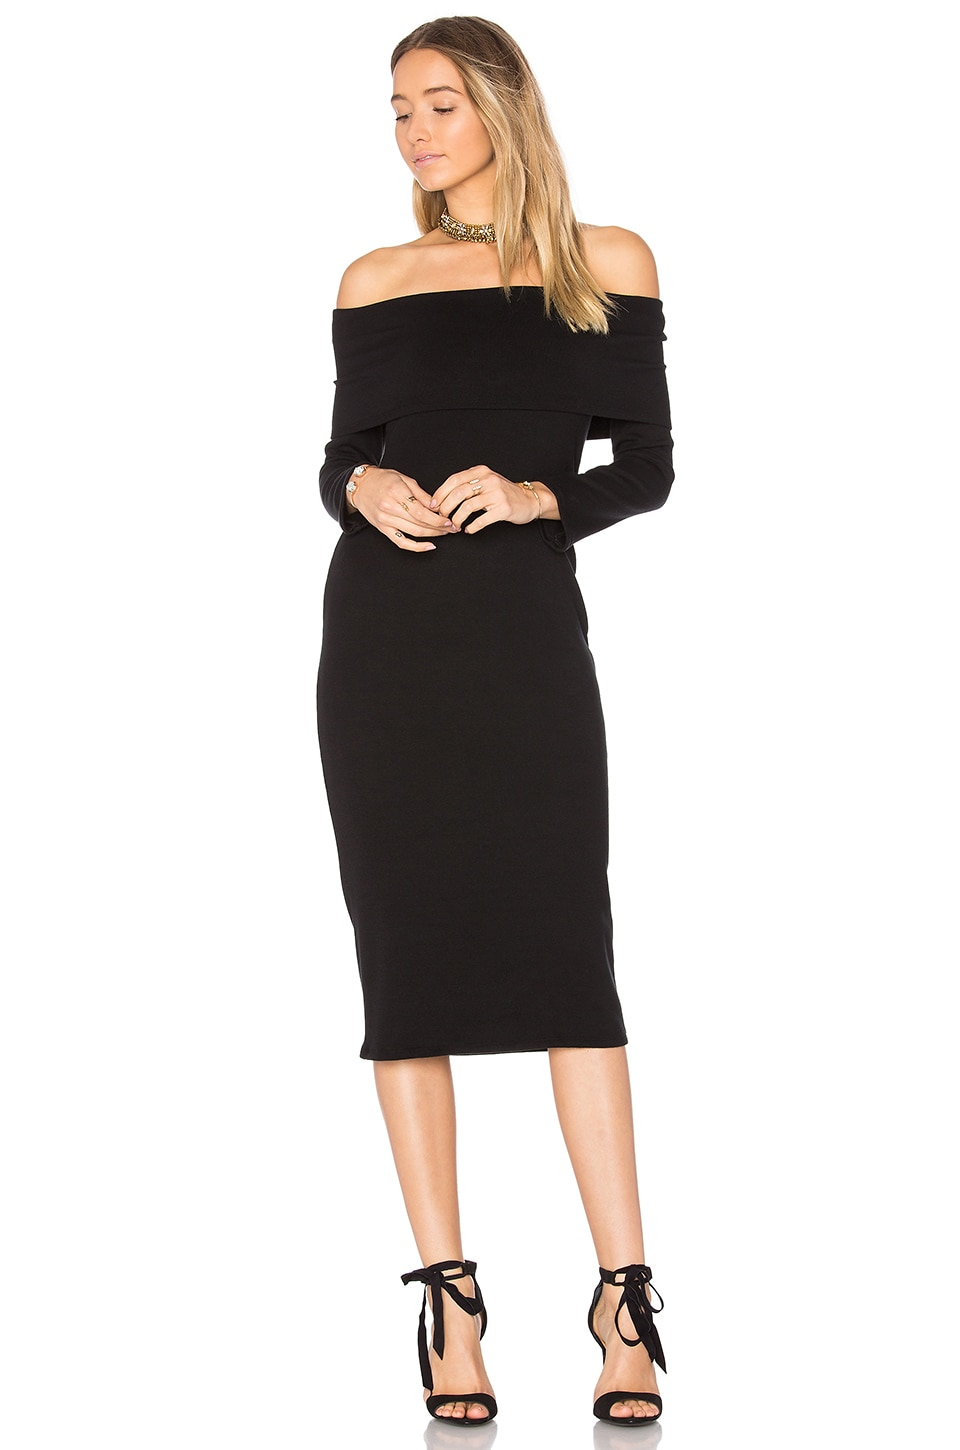 Rachel Pally Luxe Rib Welsy Dress in Black